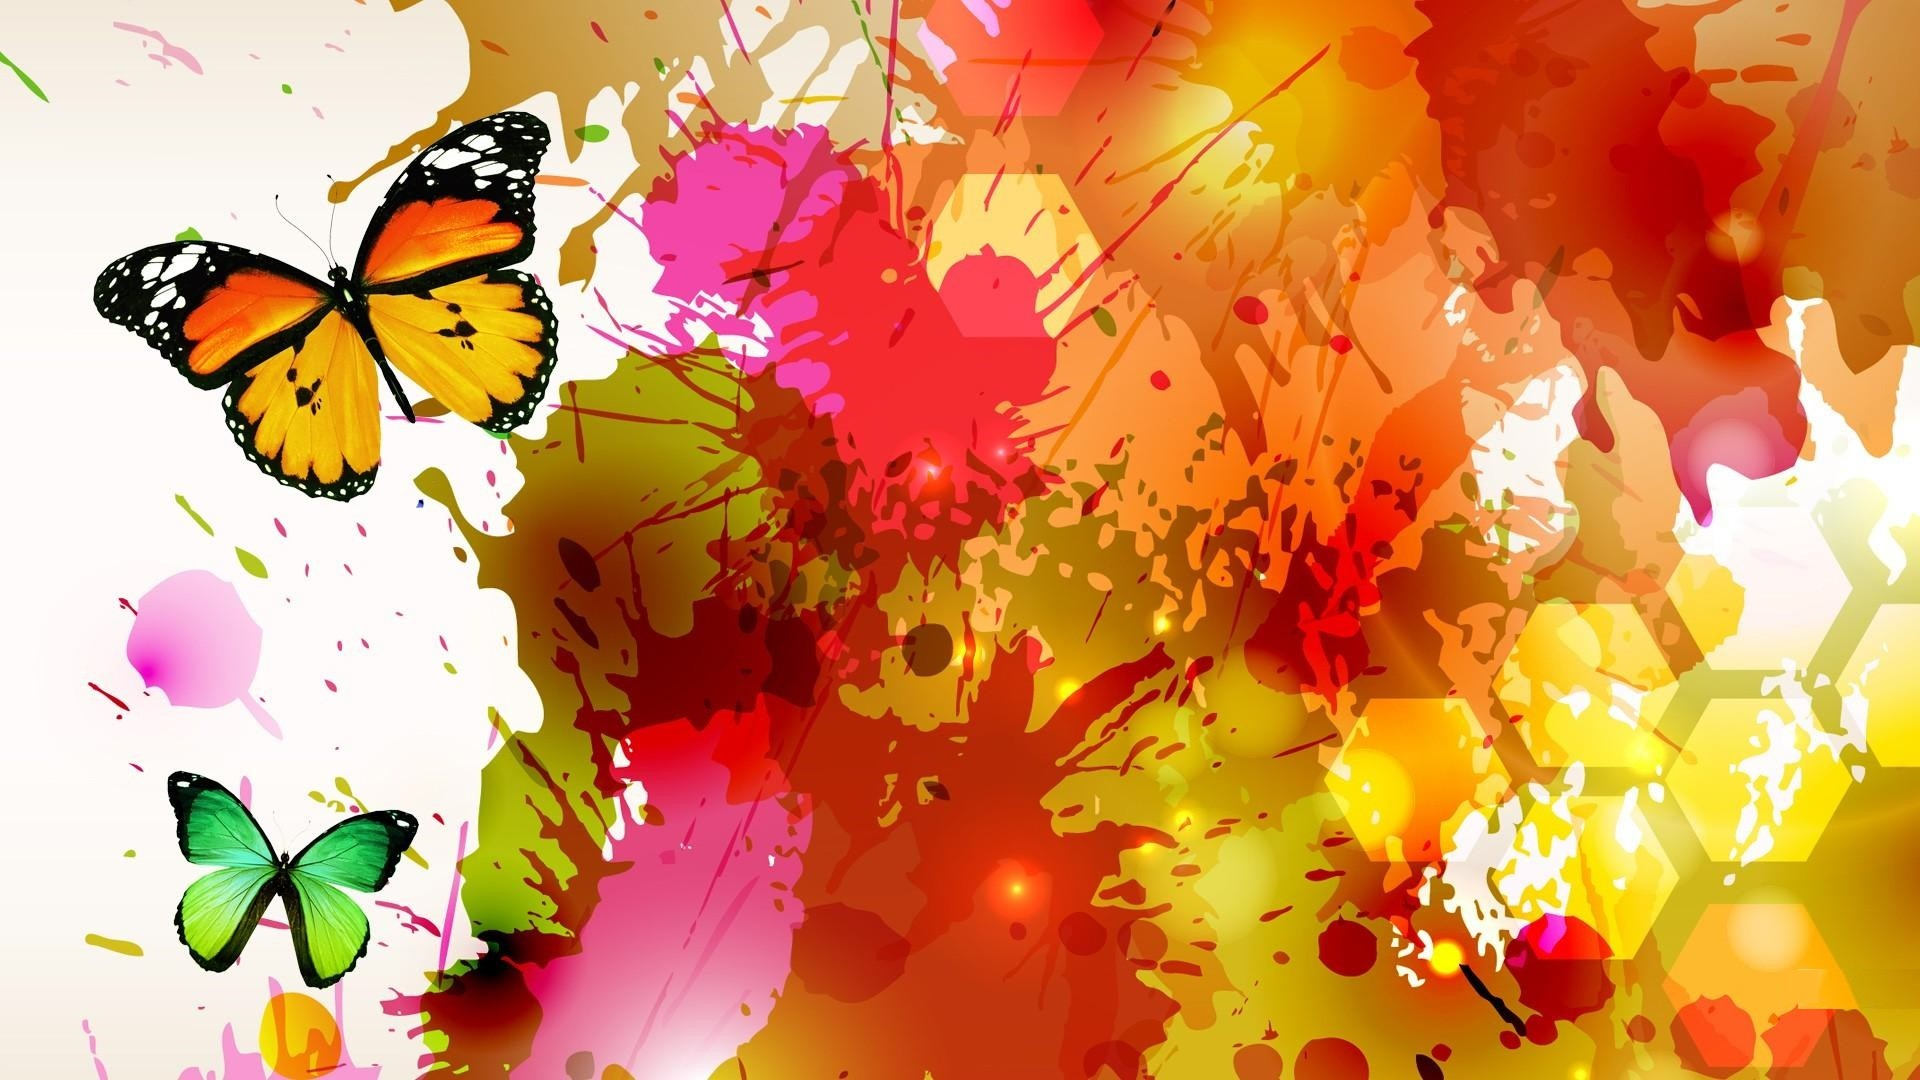 Res: 1920x1080, Hd Watercolor Art Abstract Butterfly Wallpapers.